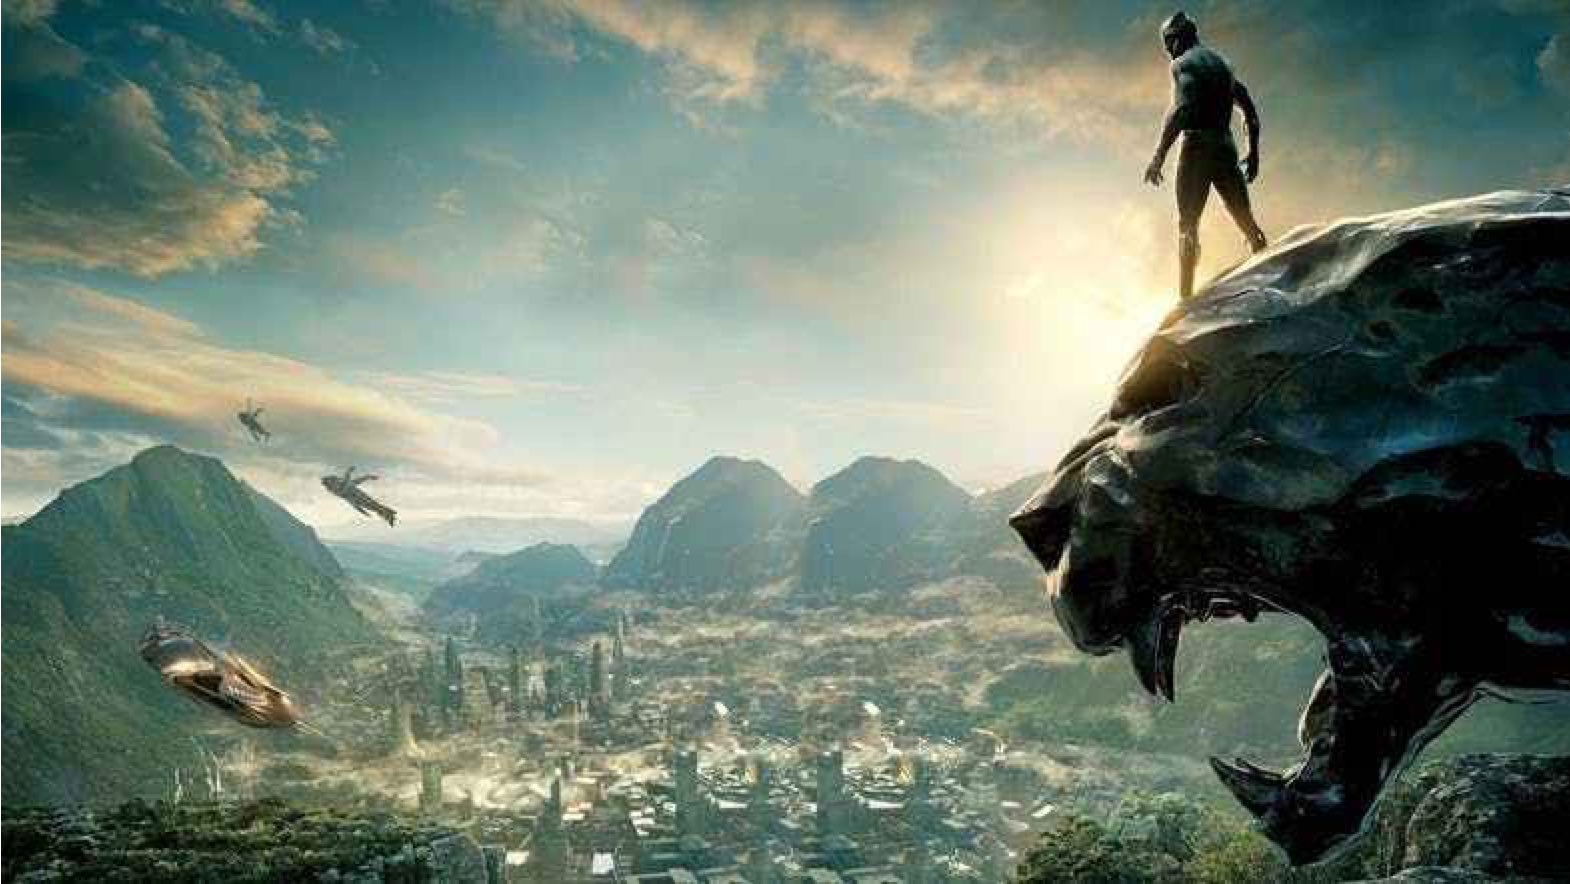 Is Black Panther?s Wakanda Being Planned for Walt Disney World?